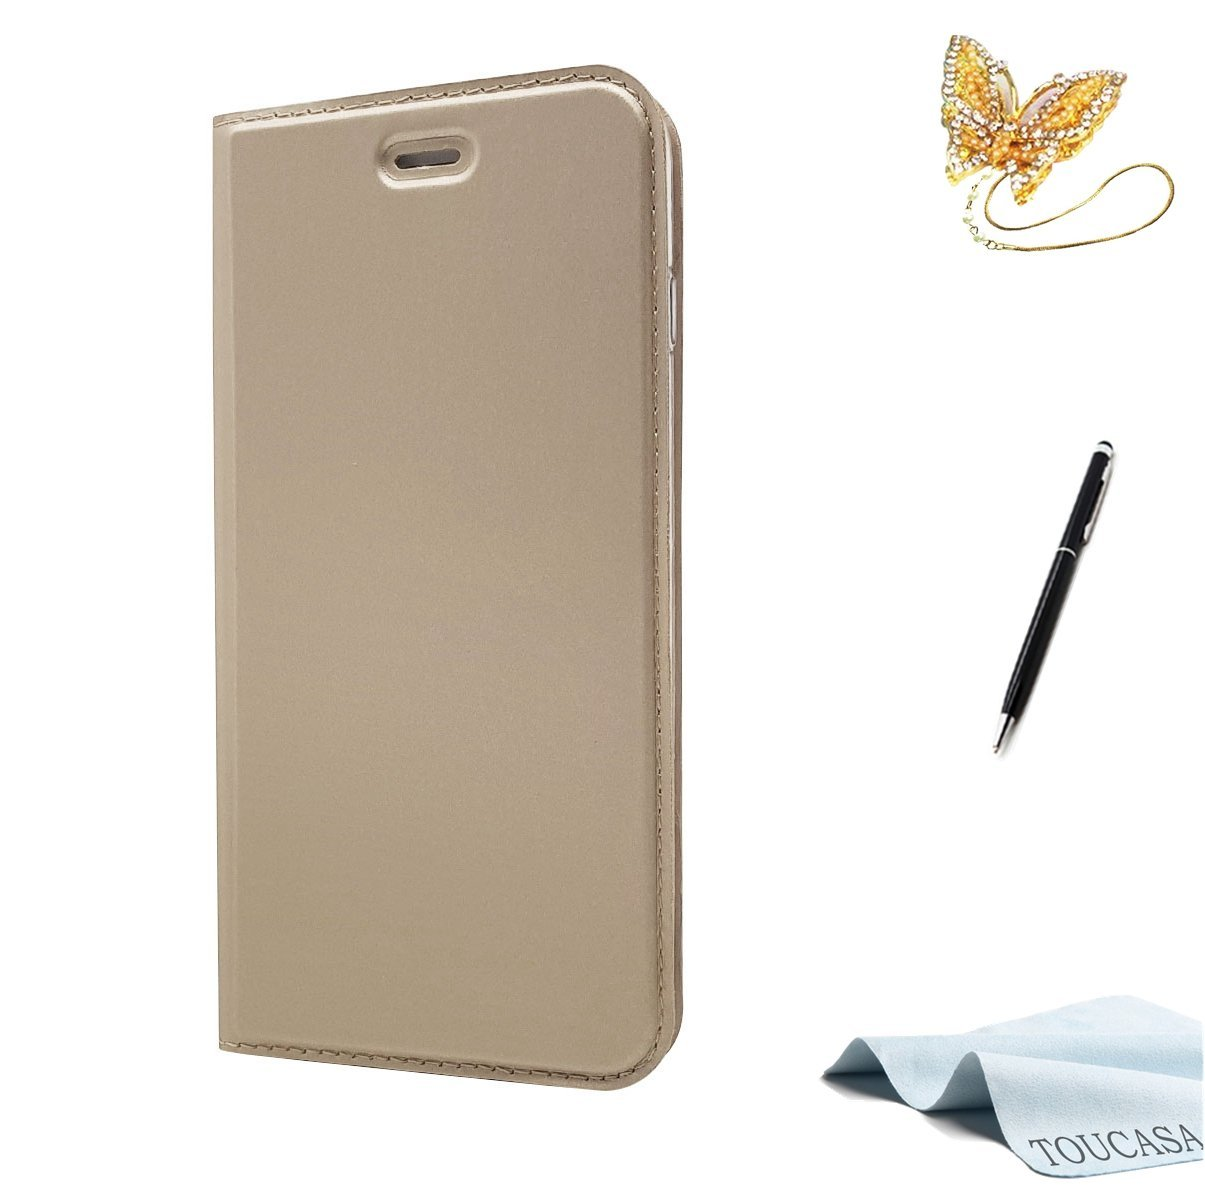 iPhone 8 Plus Handyhü lle, iPhone 7 Plus Hü lle, TOUCASA Brieftasche flip Versteckte Magnetische 0.2cm Super dü nn 33g Ultraleicht 360 stoß fest mit Lebenszeitgarantie fü r iPhone 8 Plus/iPhone 7 Plus(Blau) DD2018731qi30013